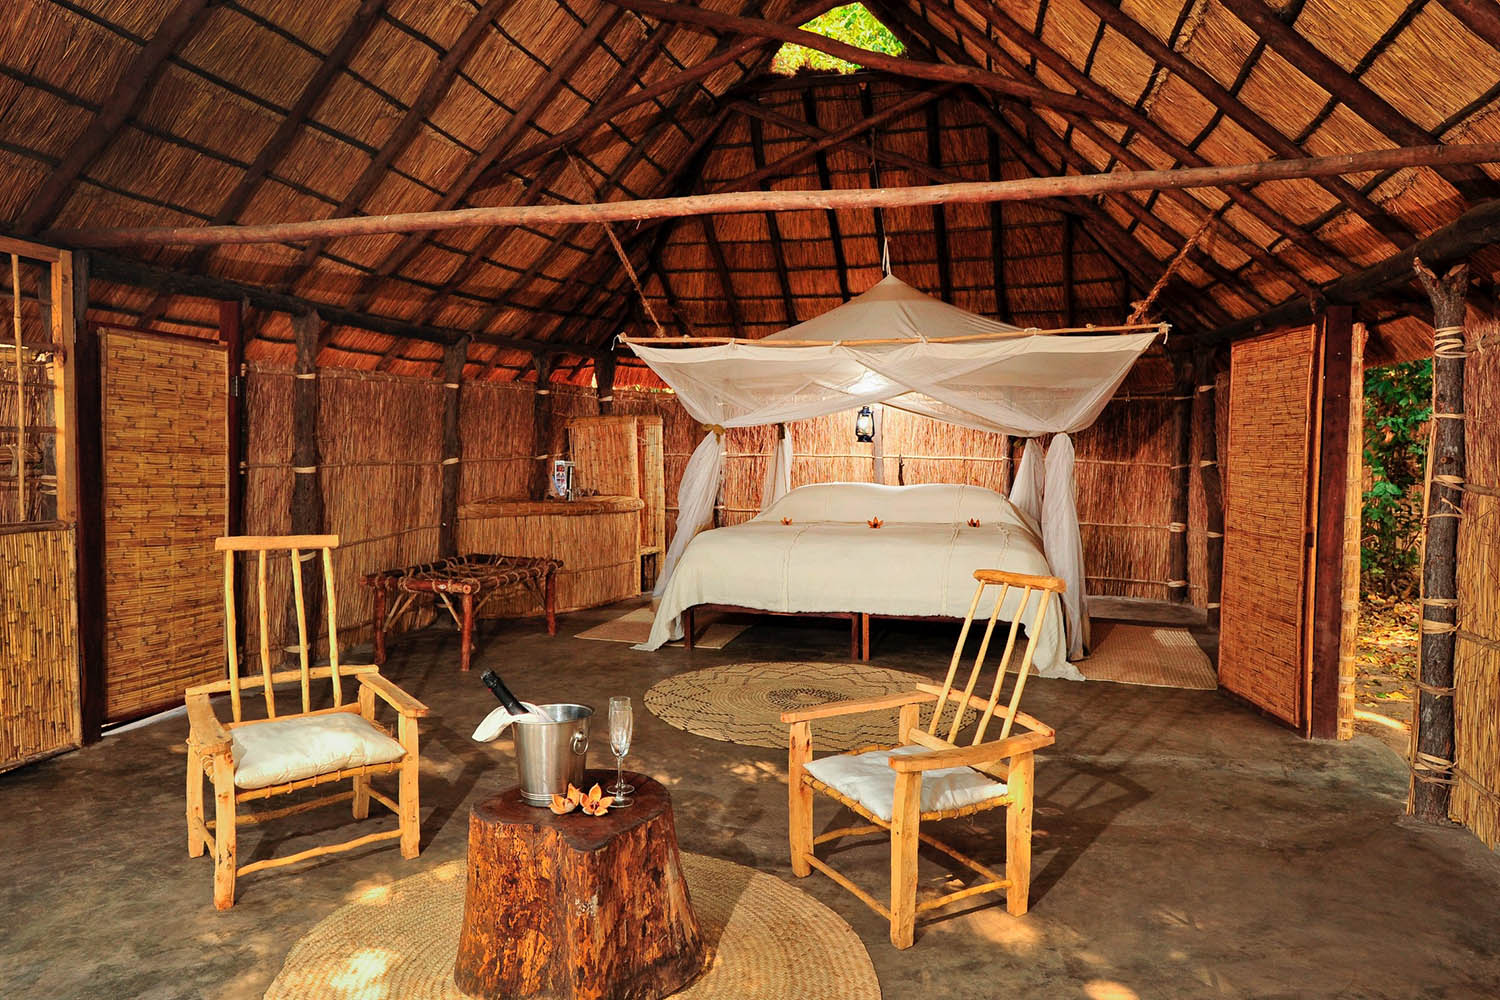 luwi-camp-lodge-zambia-in-style-tours-safari-packages-lodges-travel-south-luangwa-national-park-rustic